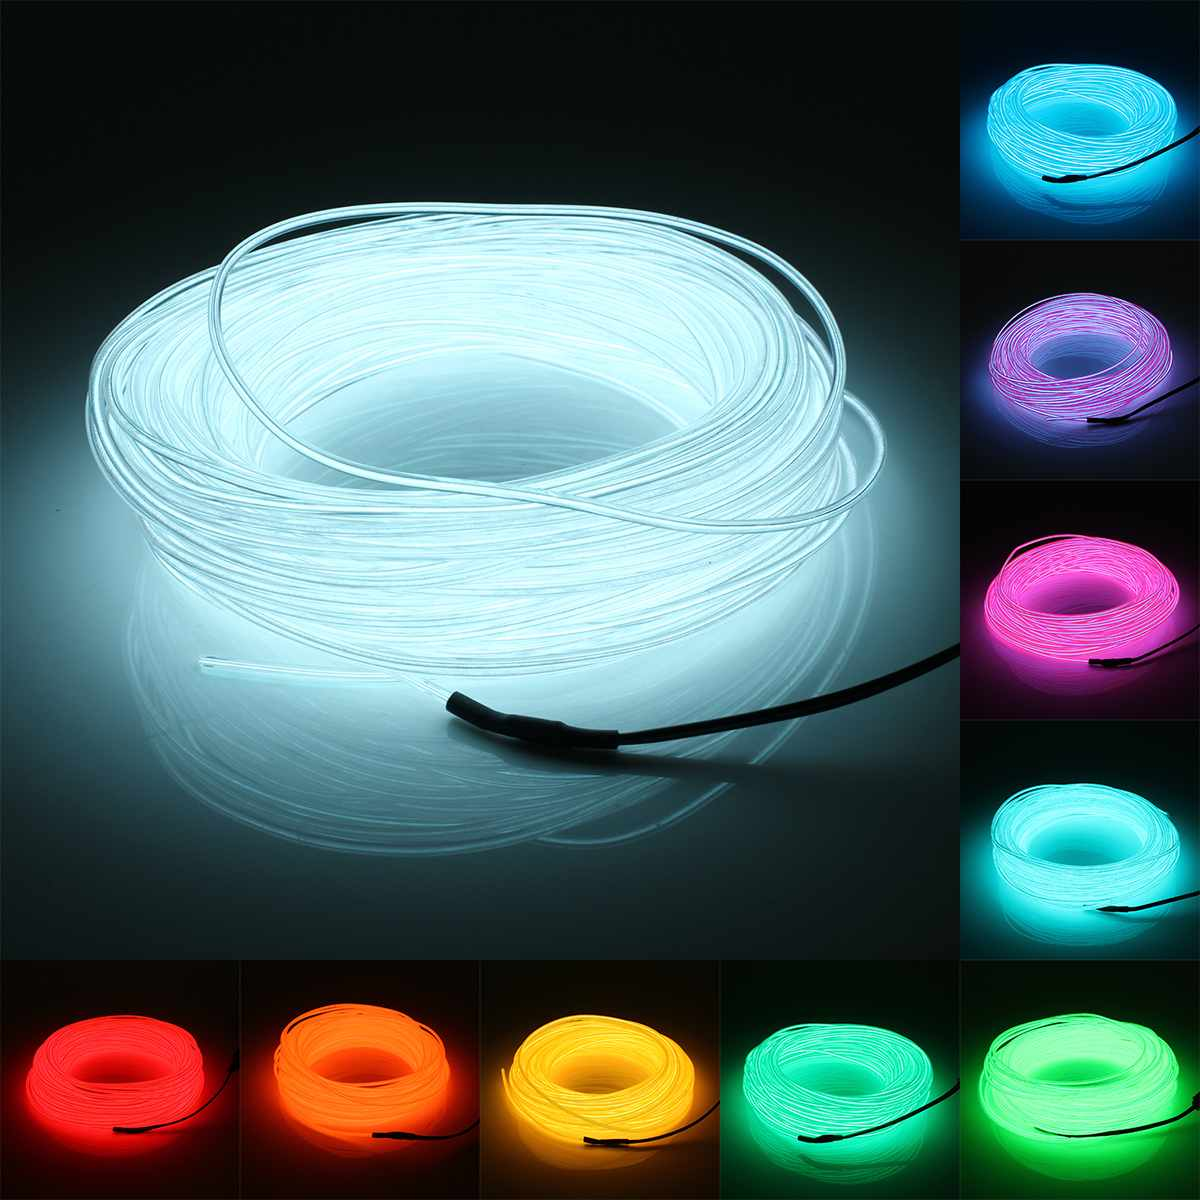 20M EL Light LED Strip DC 12V Flexible Soft 10 Colors Tube Wire Neon Glow Car Rope Strip Light For Christmas Decoration